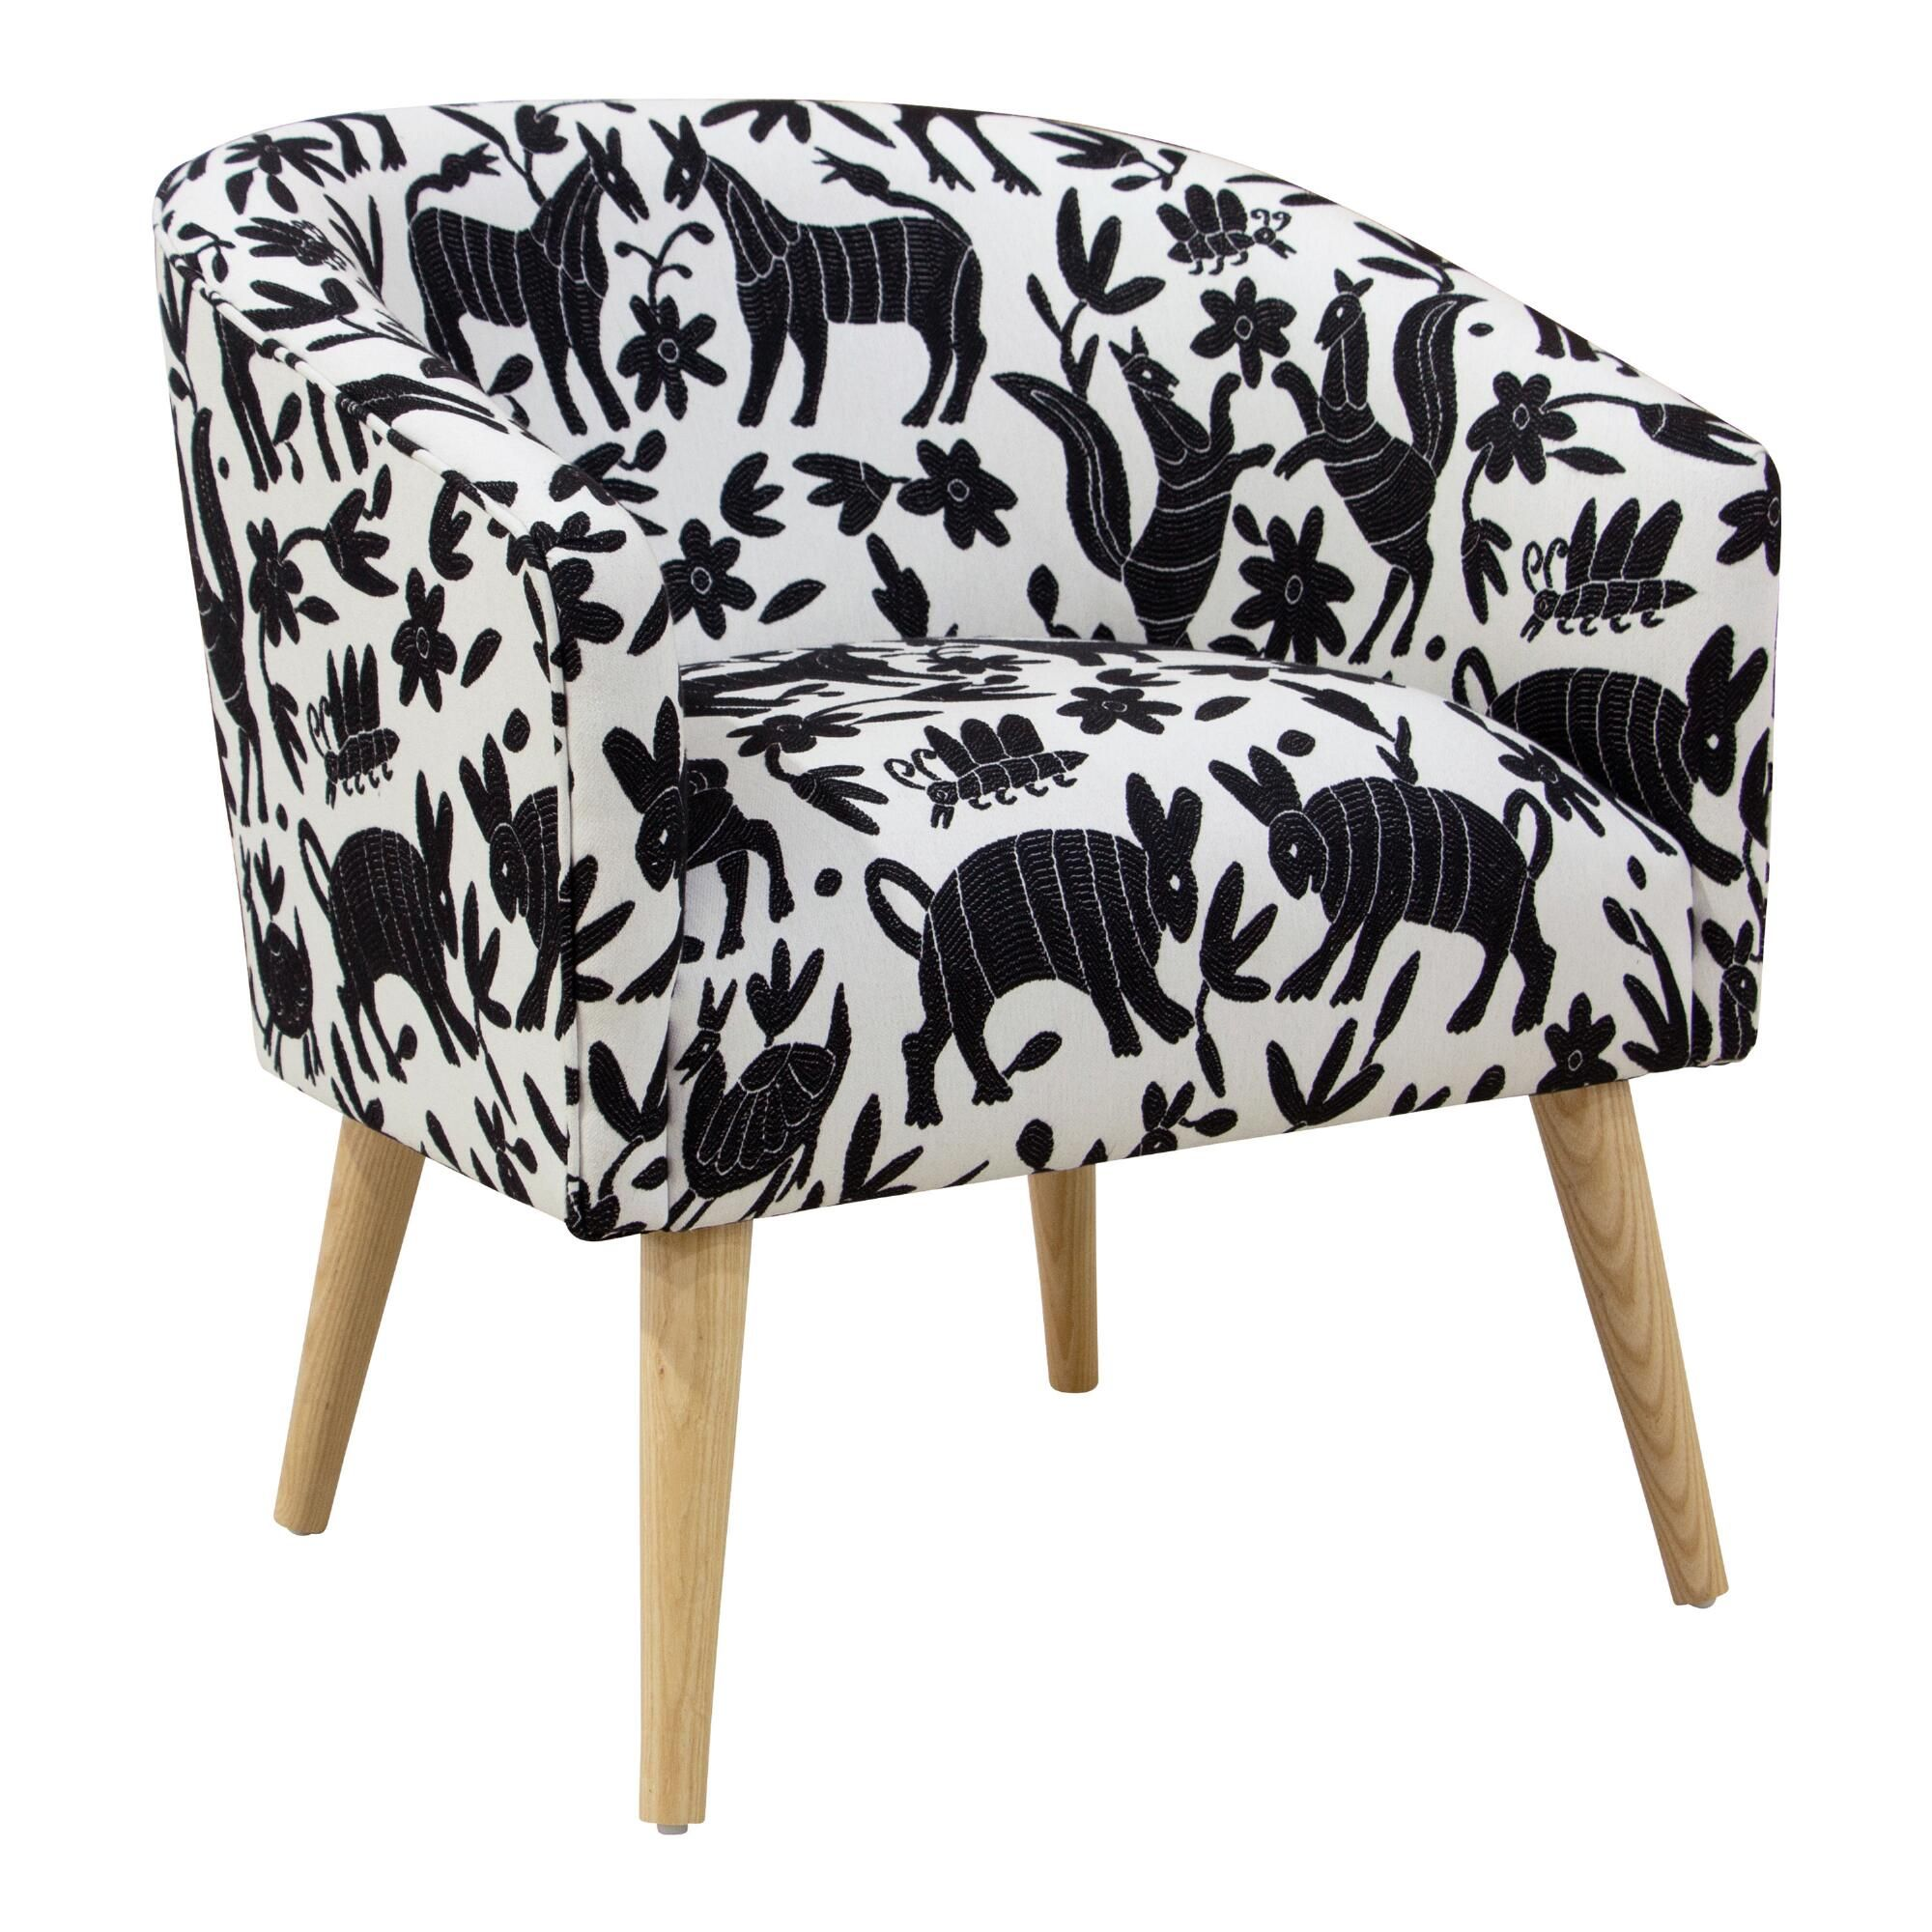 Pinata Tuxedo Ilana Upholstered Chair Black White Cotton By World Market In 2020 Upholstered Chairs Furniture Chair #world #market #living #room #chairs